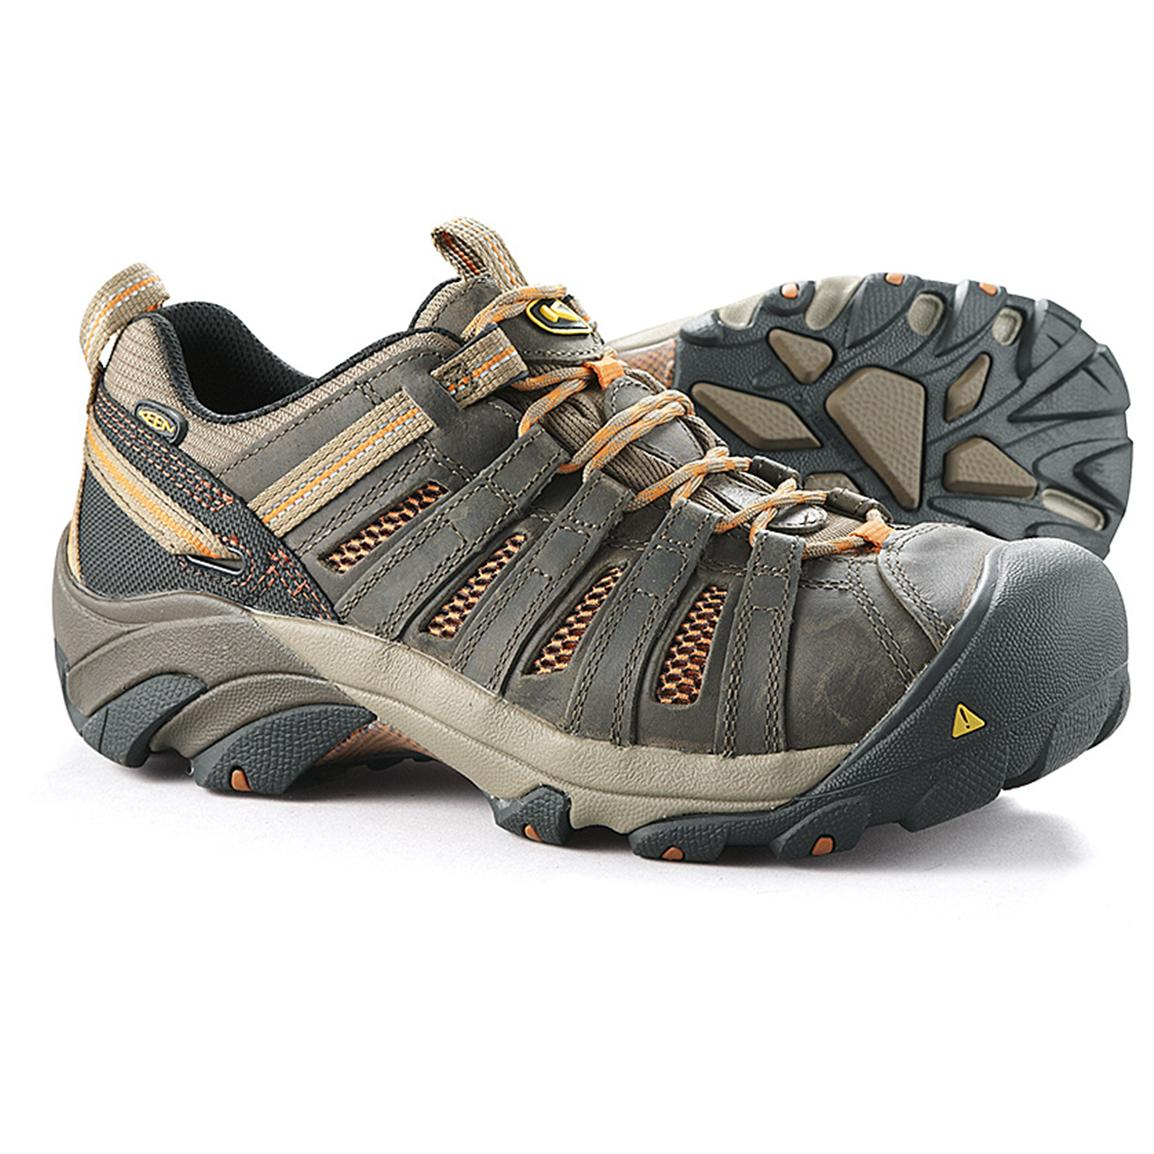 KEEN Men's Utility Flint Low Steel Toe Shoes, Shiitake / Rust